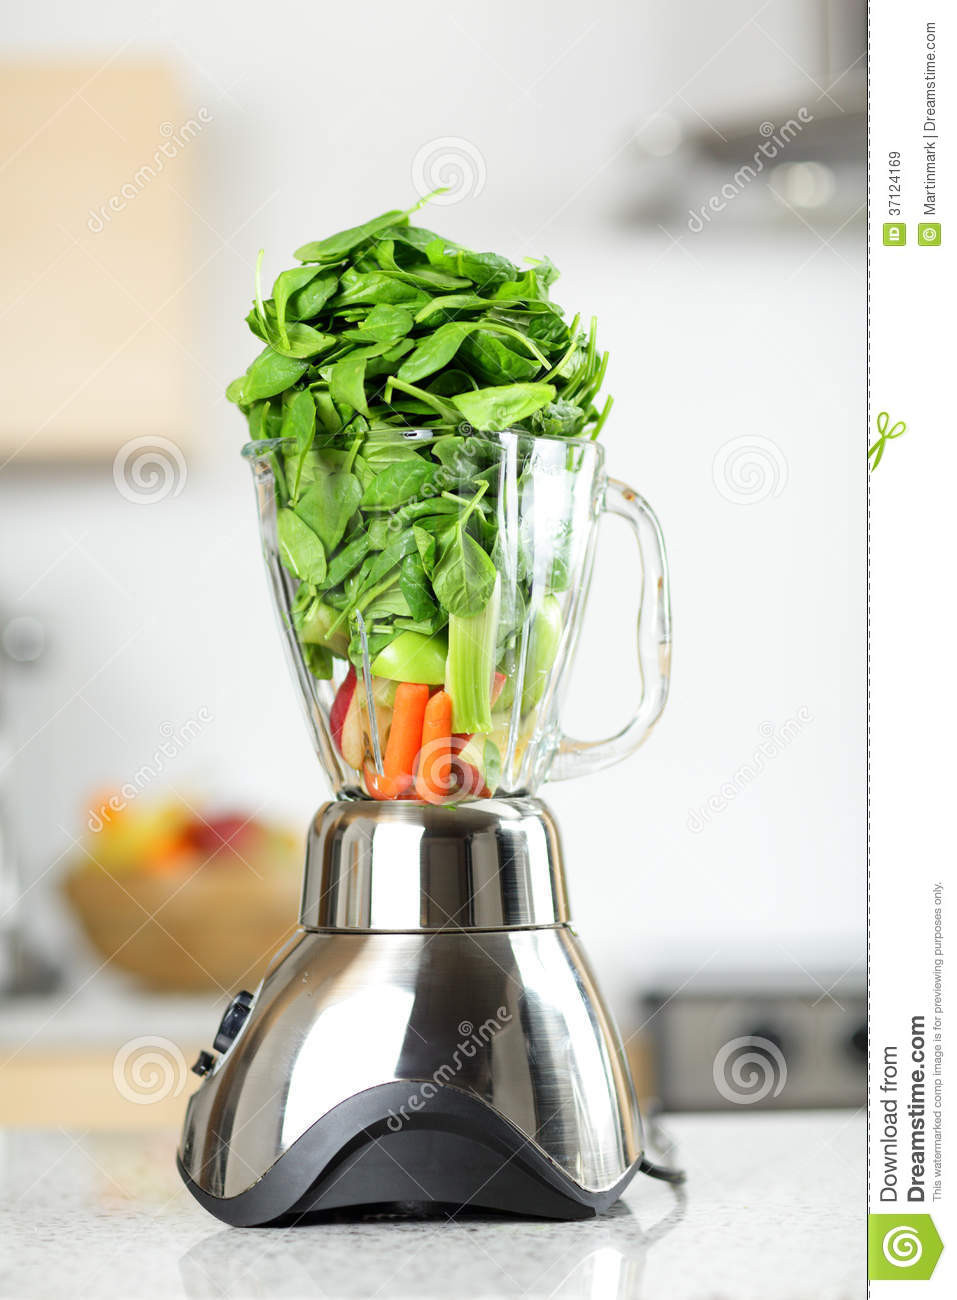 Healthy Vegetable Smoothies  Green Ve able Smoothie In Blender Royalty Free Stock